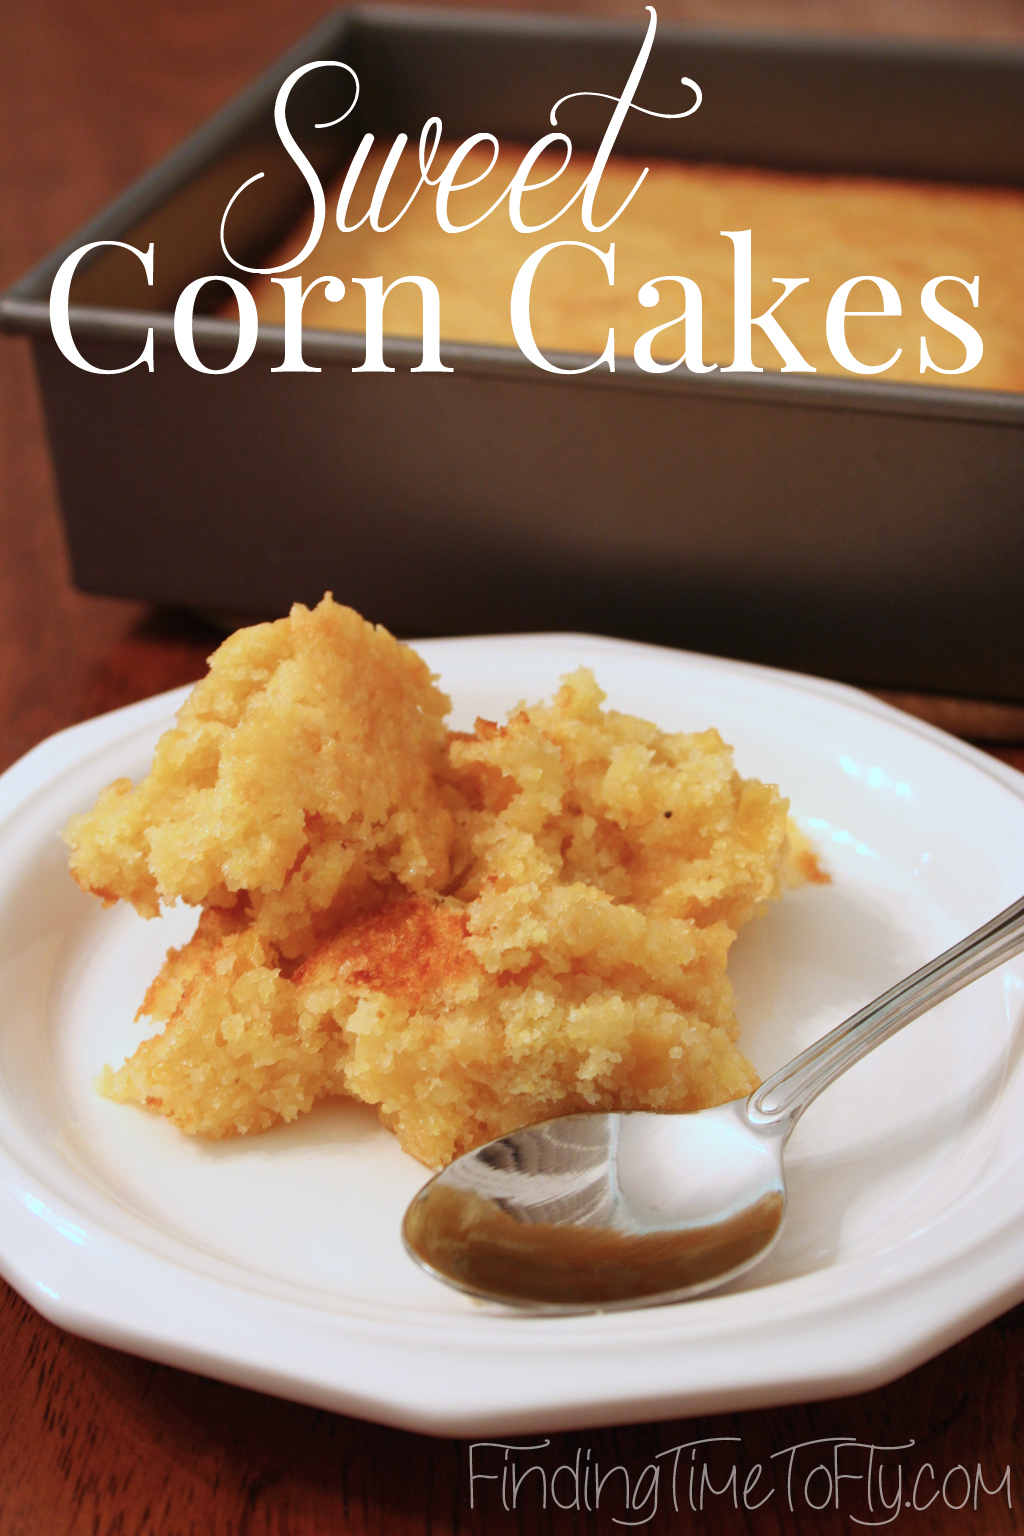 These Sweet Corn Cakes pair well with spicy foods (like Mexican dishes).